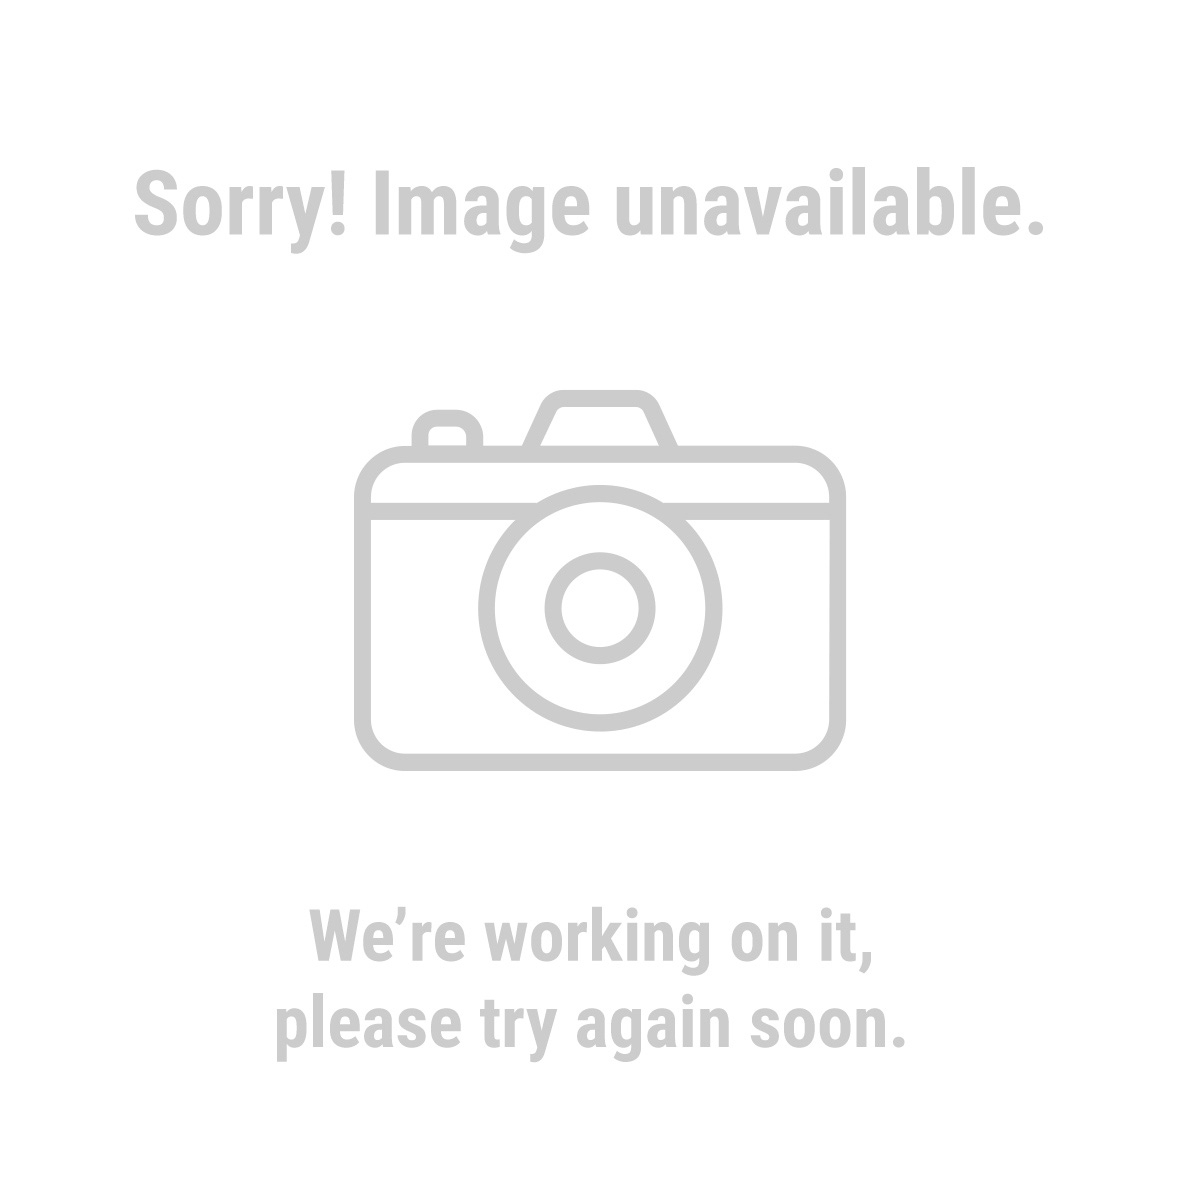 "Chicago Electric Welding 42913 0.030""  E71T-GS Flux Core Welding Wire, 2 Lbs."